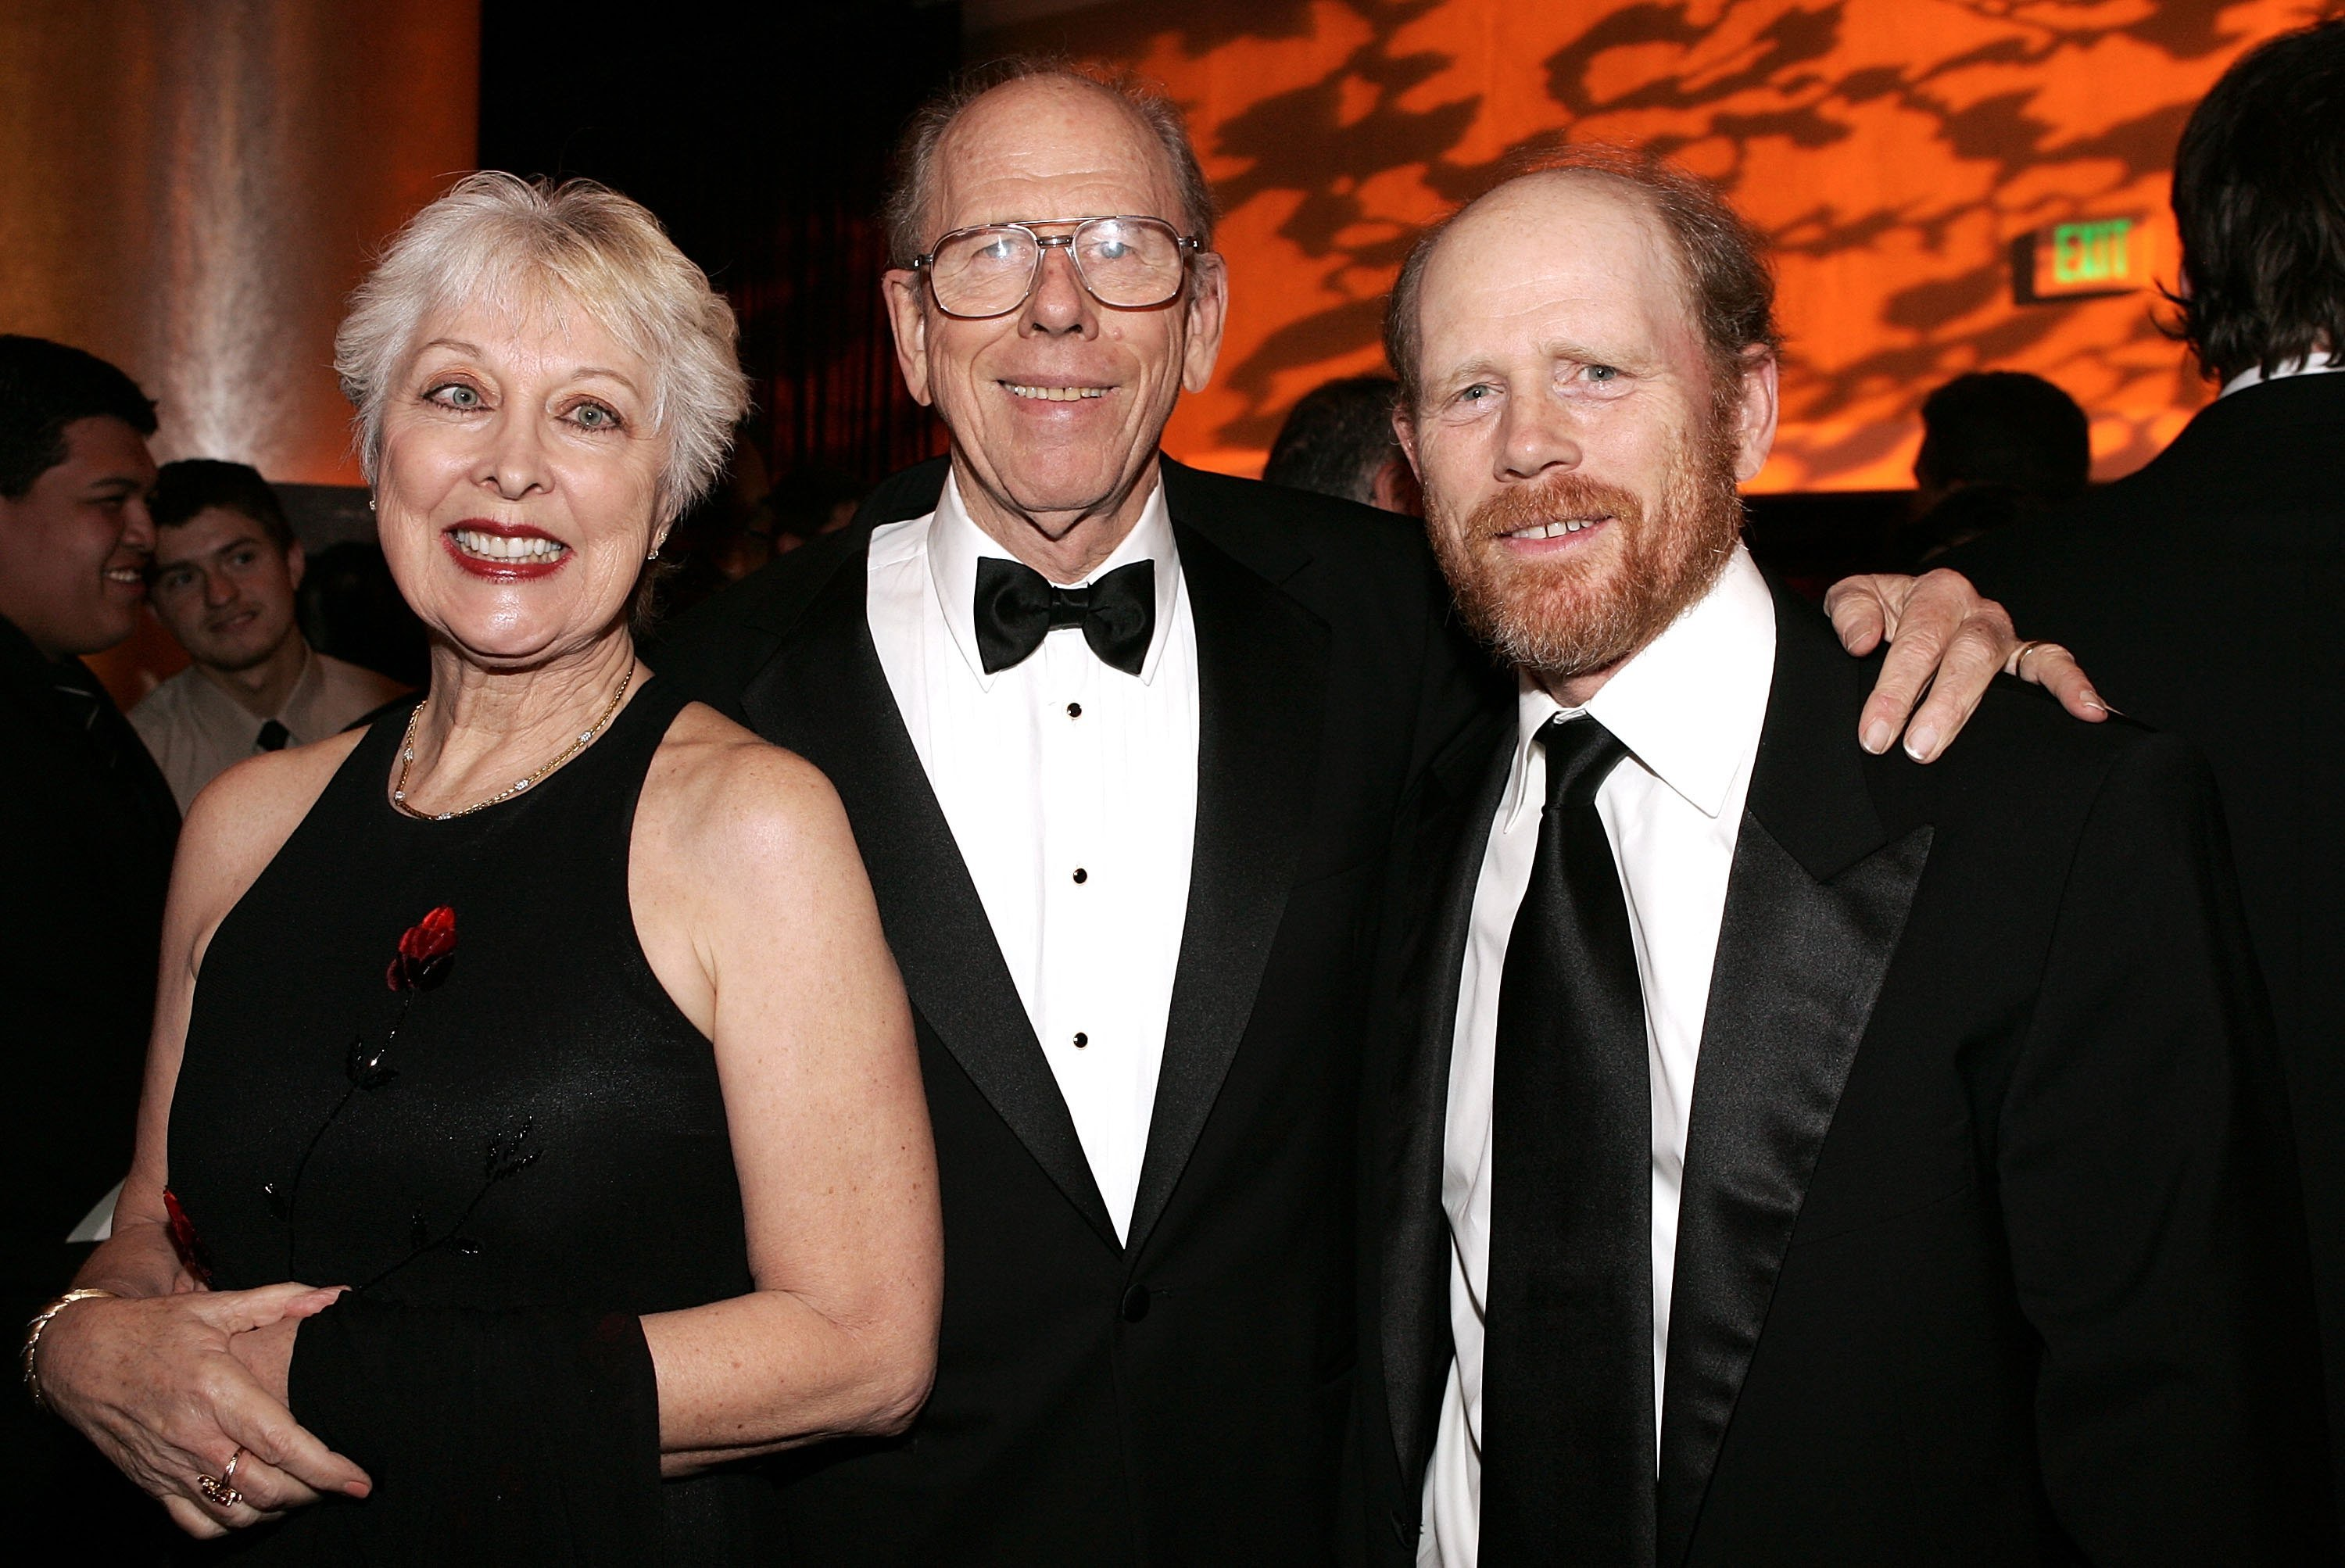 Ron Howard and parents Rance Howard and Judy O Sullivan attend the 56th Annual ACE Eddie Awards at the Beverly Hilton Hotel on February 19, 2006 | Photo: GettyImages